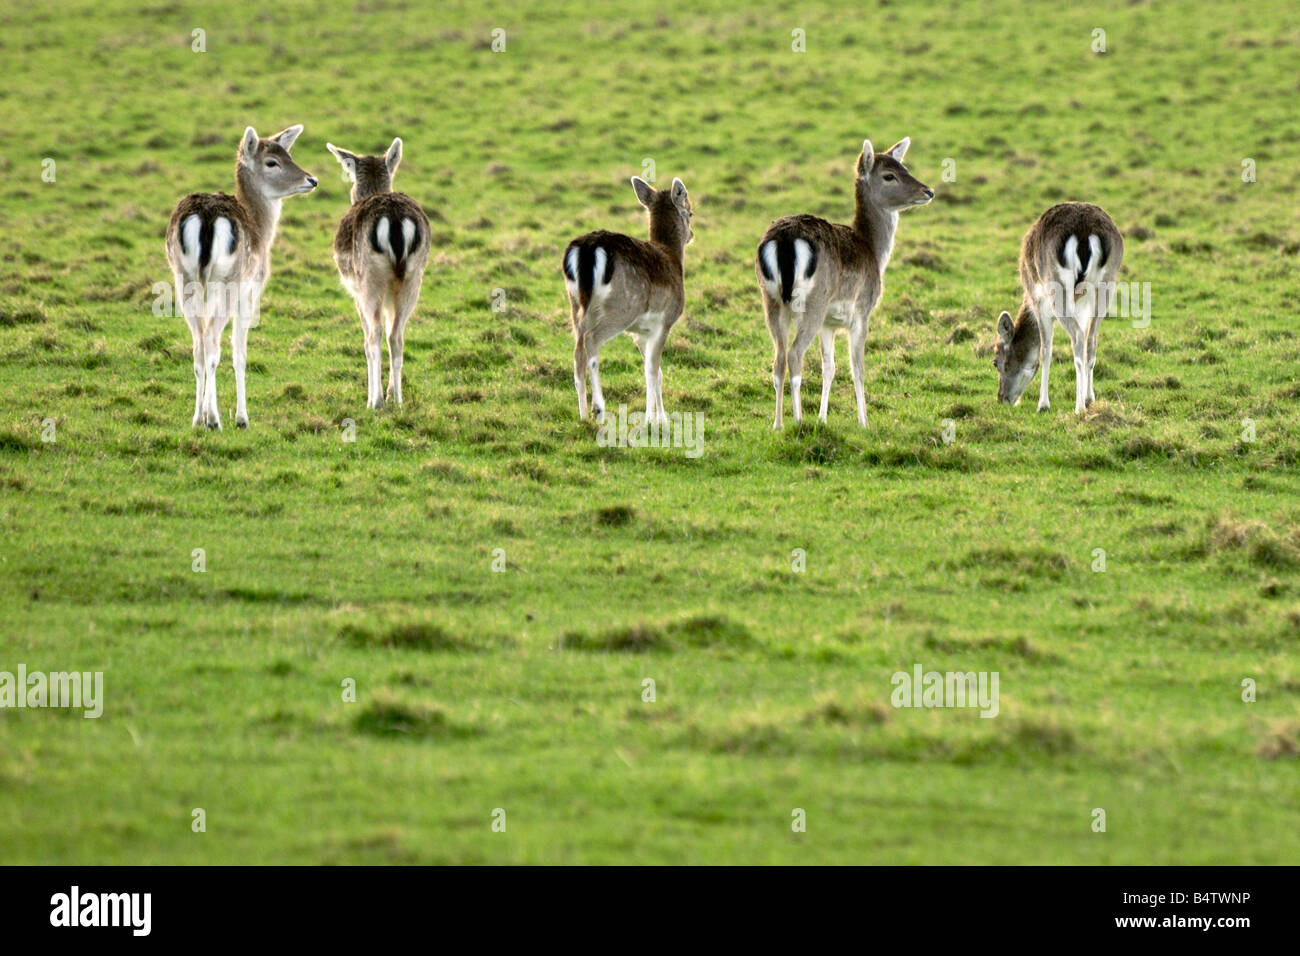 Five female fallow deer in a row showing their black and white marked bottoms Stock Photo